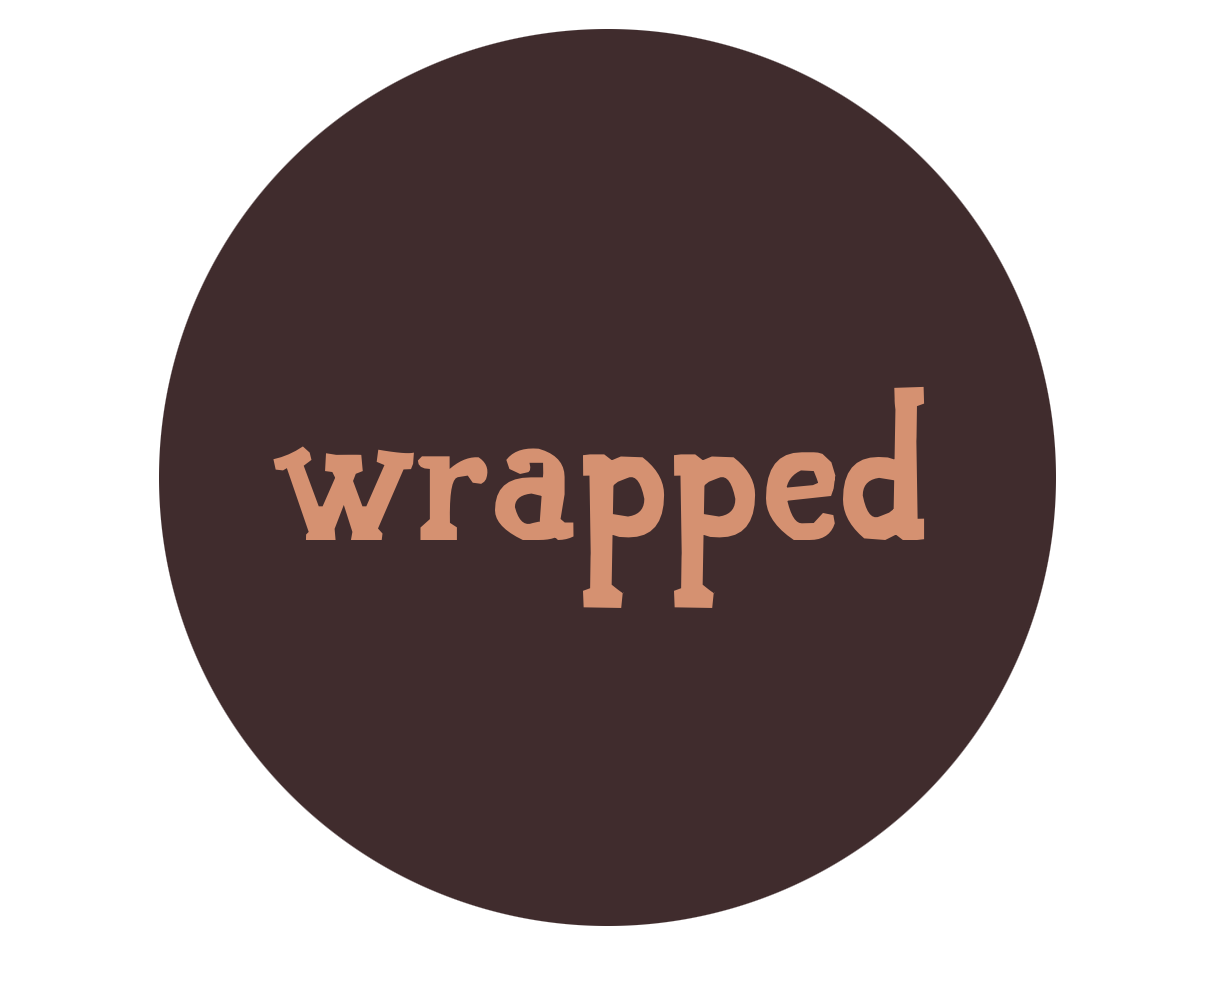 wrappedlogo.png